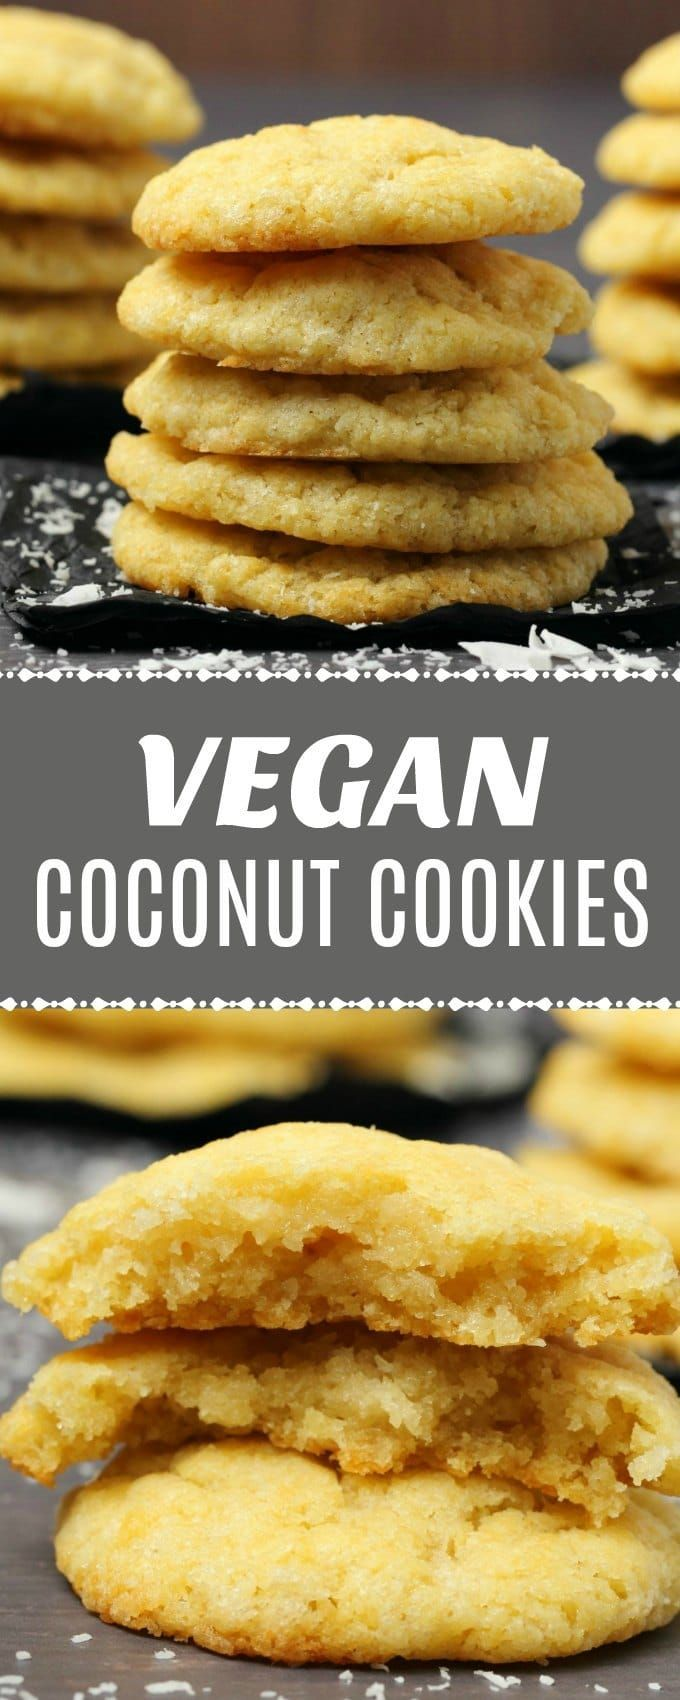 Soft, moist and buttery vegan coconut cookies packed with coconut flavor and tex... -  Kuchen... Soft, moist and buttery vegan coconut cookies packed with coconut flavor and tex... -  Kuchen vegan -